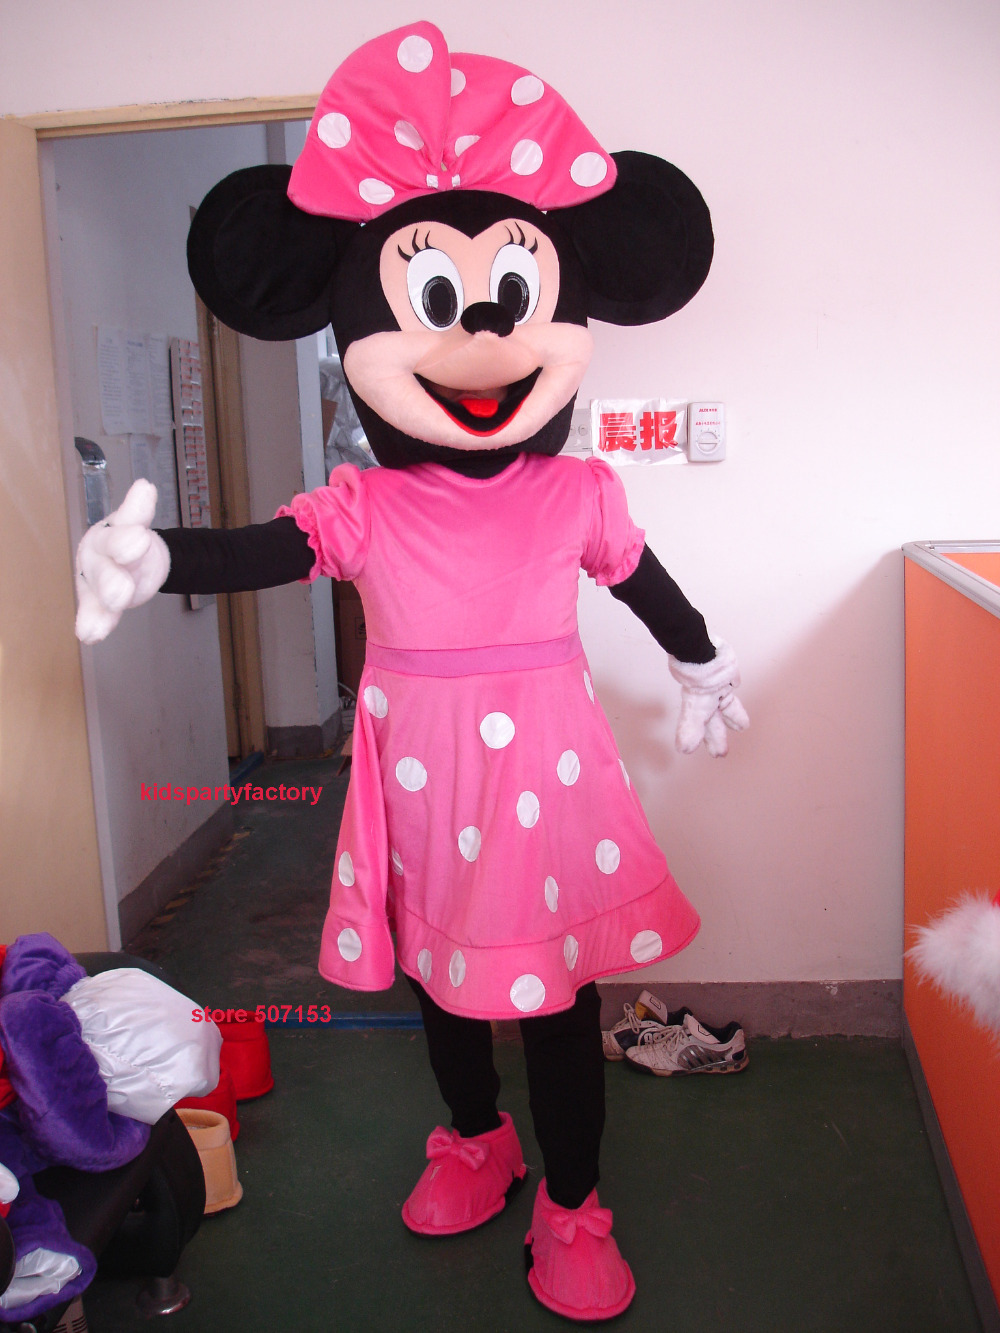 summer hot sale new adult pink minnie mouse mascot costume with suits shoes hands fancy party. Black Bedroom Furniture Sets. Home Design Ideas